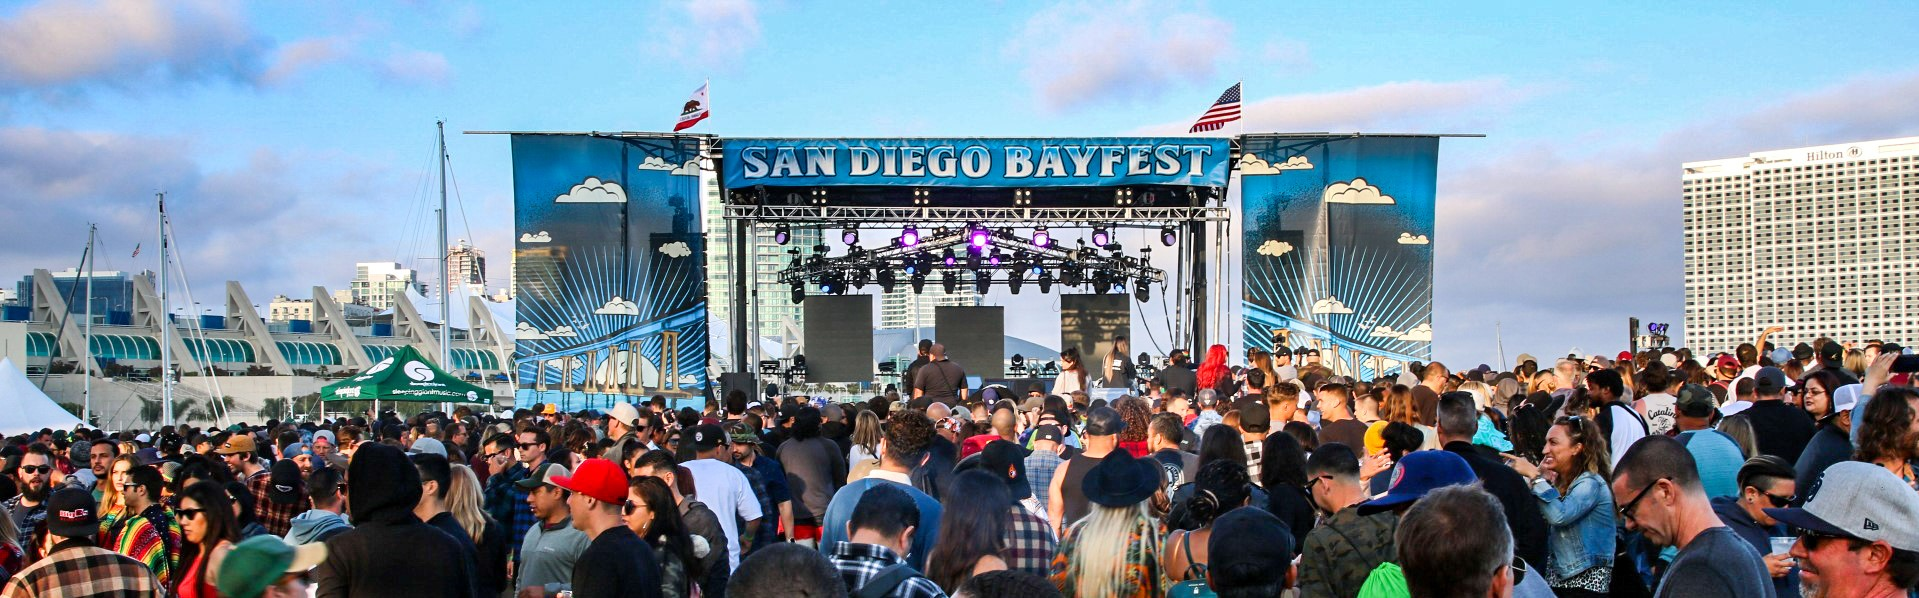 San Diego Bayfest 2019 Embarcadero Park North-Slightly Stoopid,Tribal Seeds,Fortunate Youth,Don Carlos,Hirie,Band Of Gringos